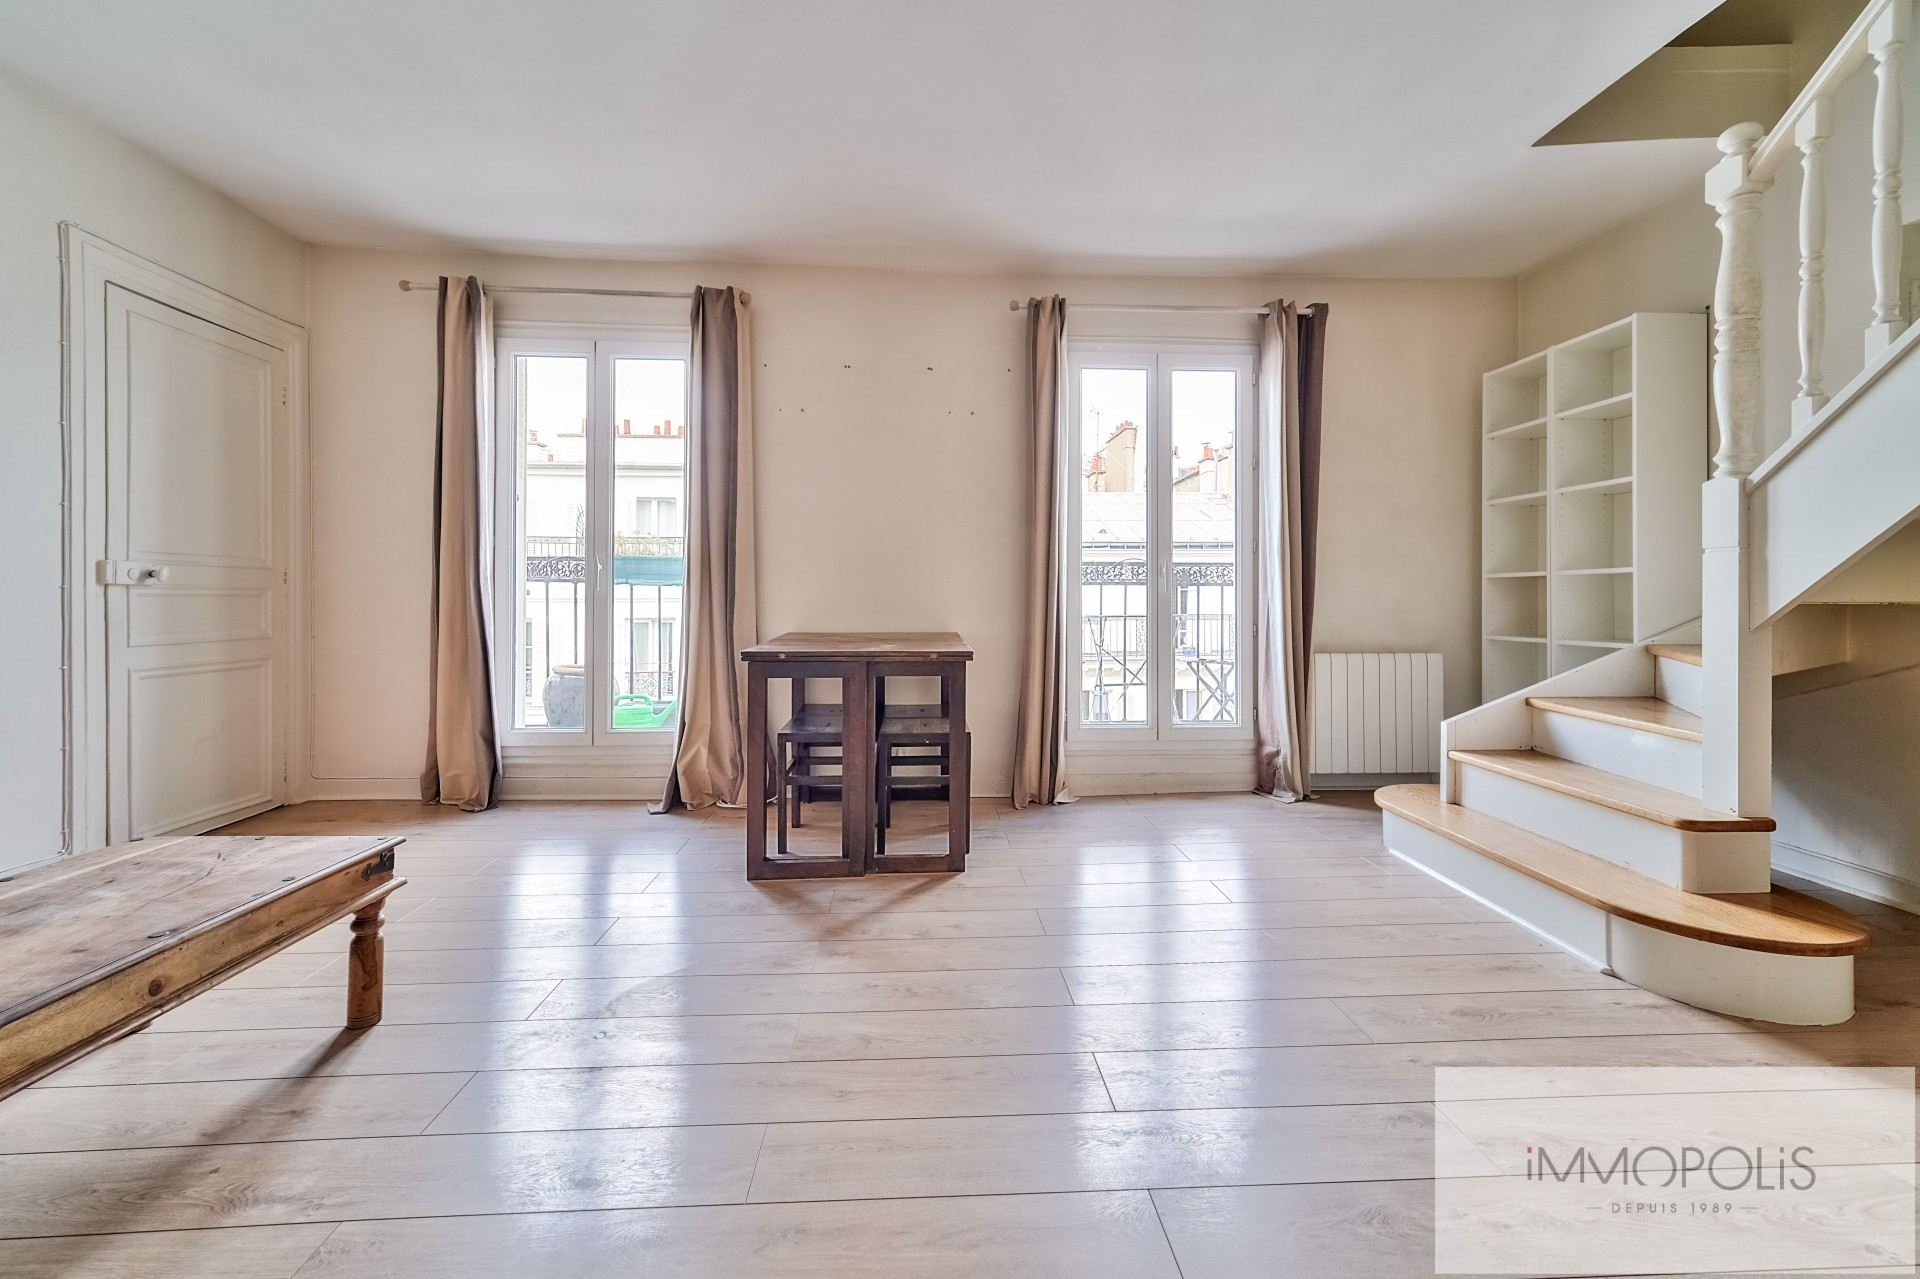 Duplex with Sacré Coeur view and continuous balcony – 63.77 m² carrez 1